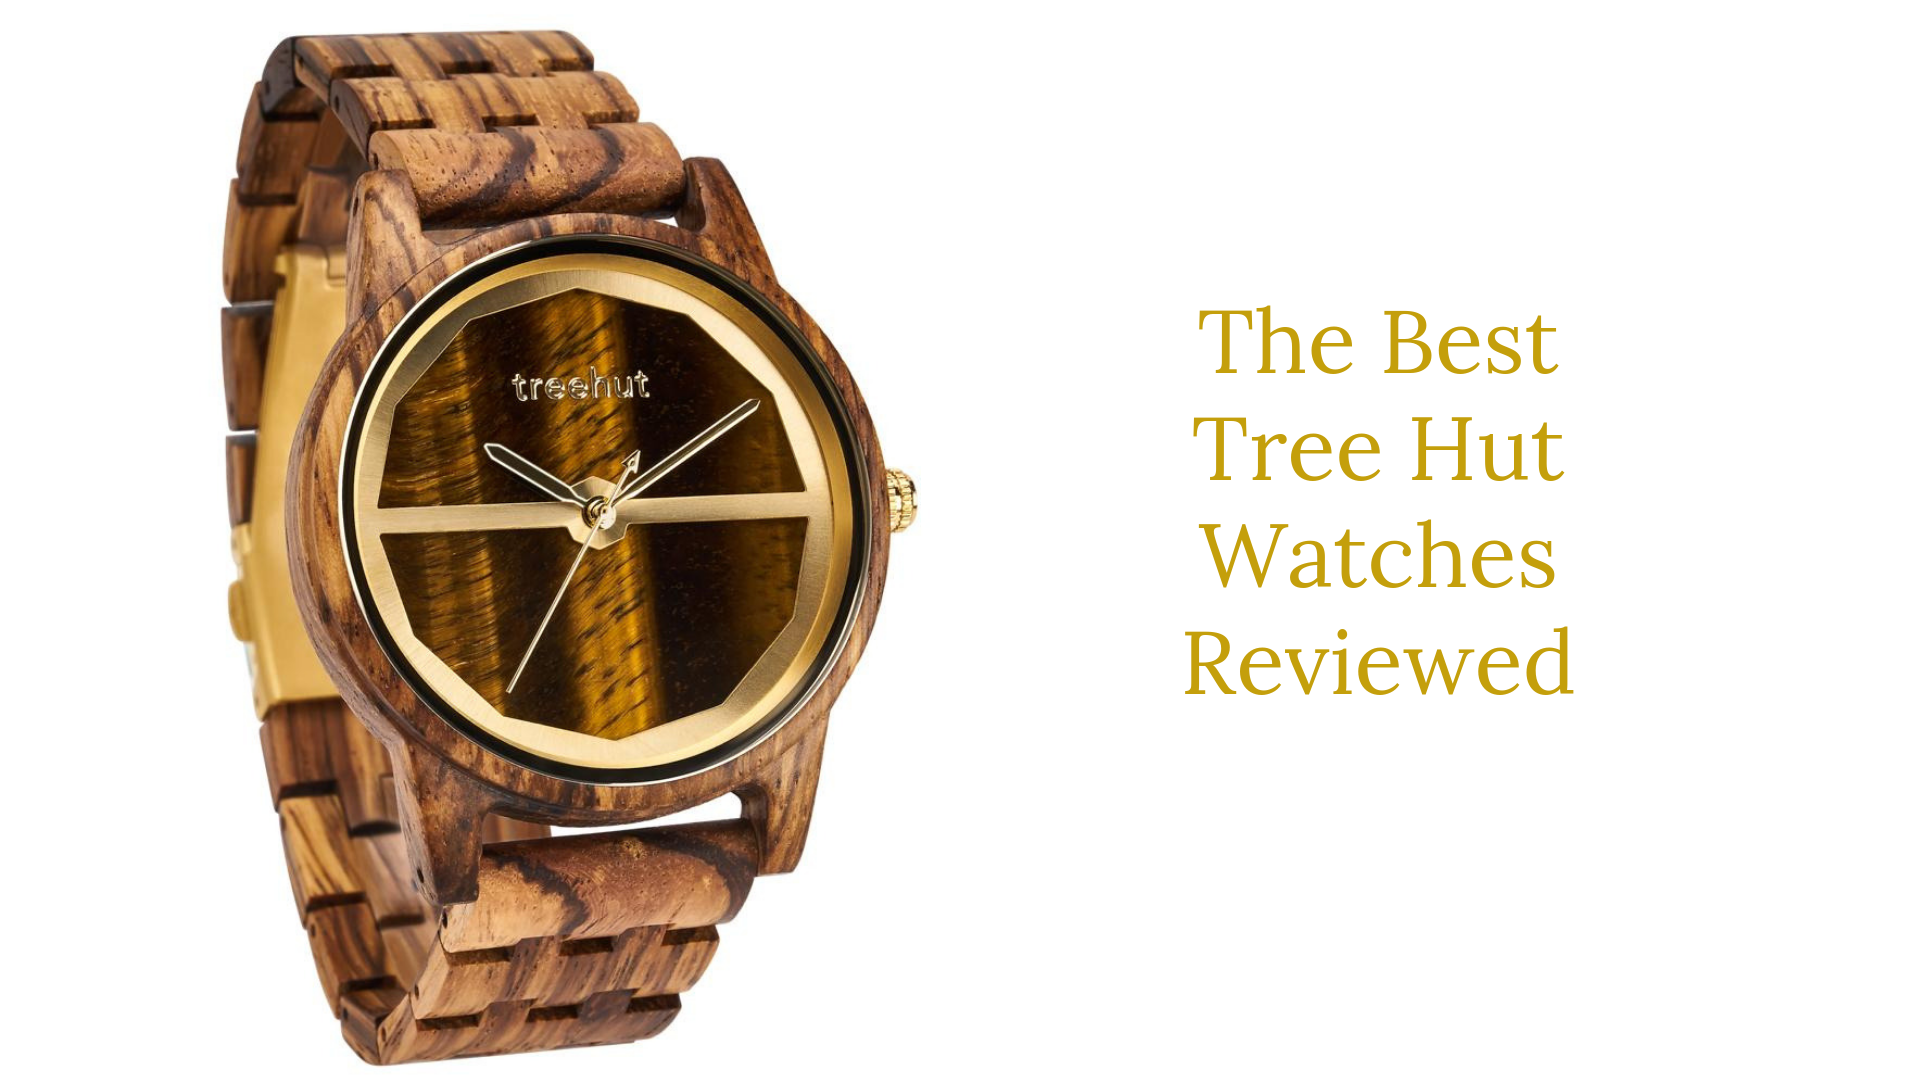 10 Best Tree Hut Watches - 2019 Guide & Reviews - Top Ten